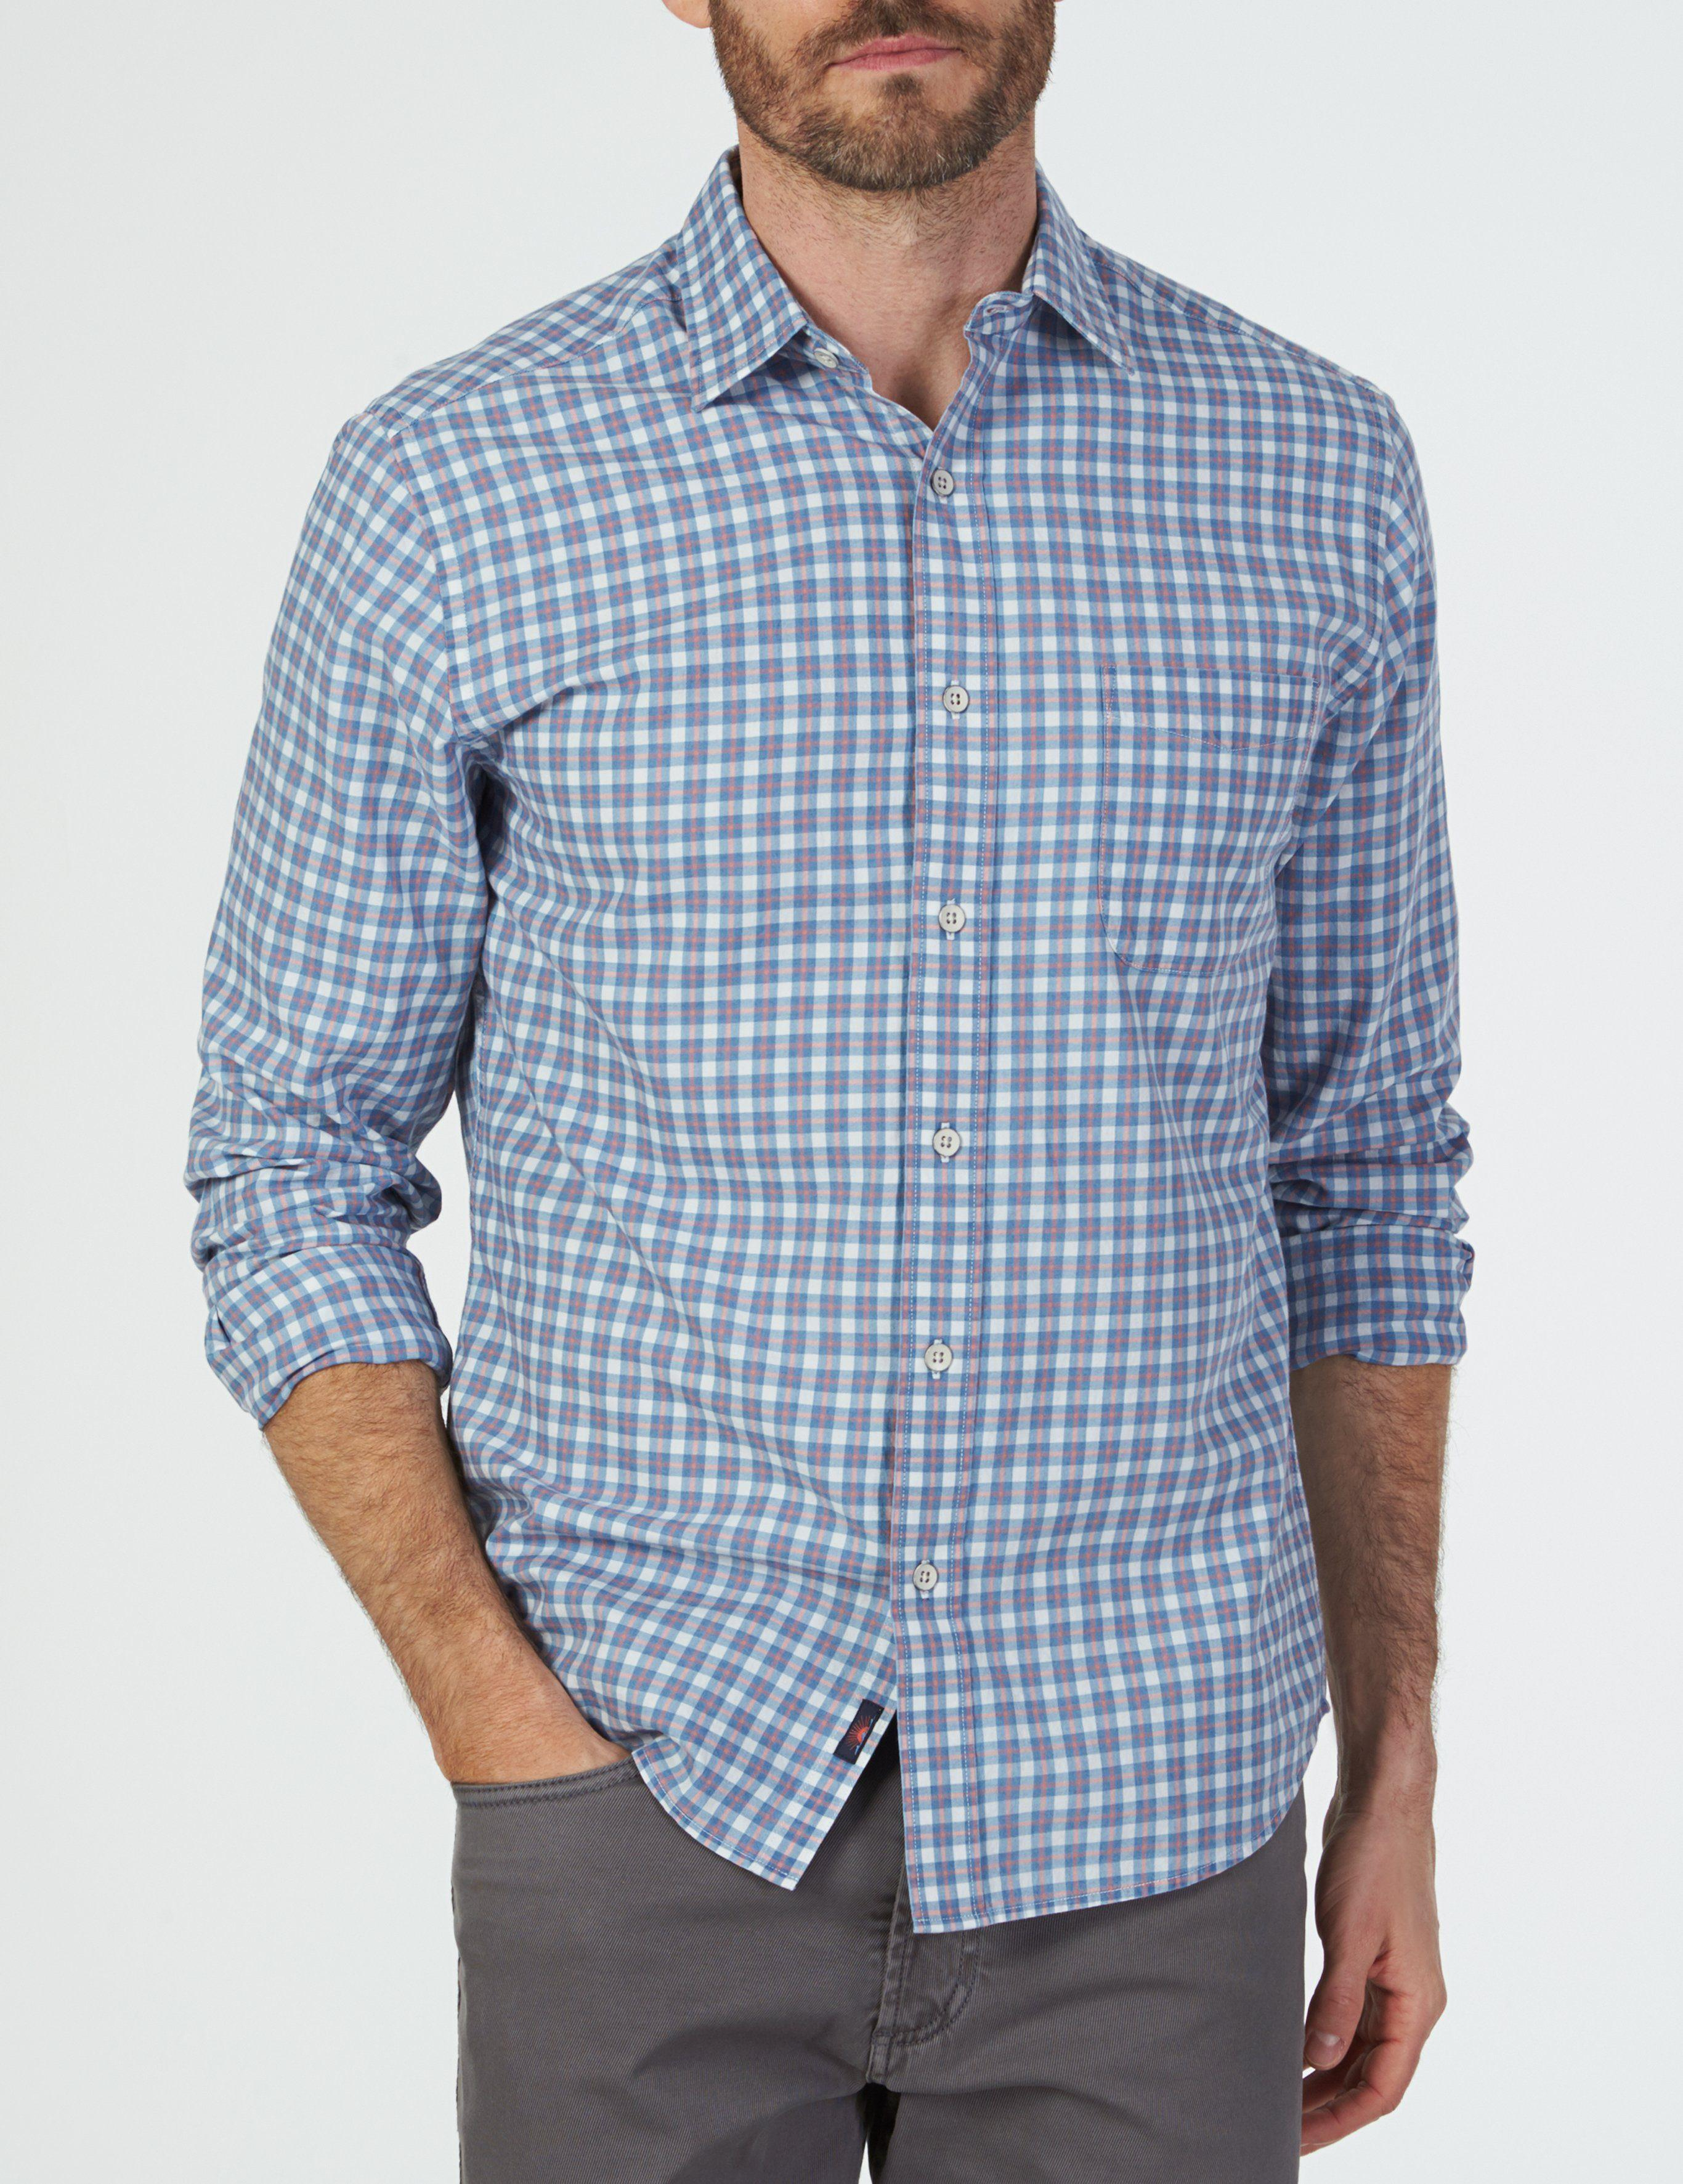 63045f6f898 Faherty Brand Everyday Shirt in Blue for Men - Lyst